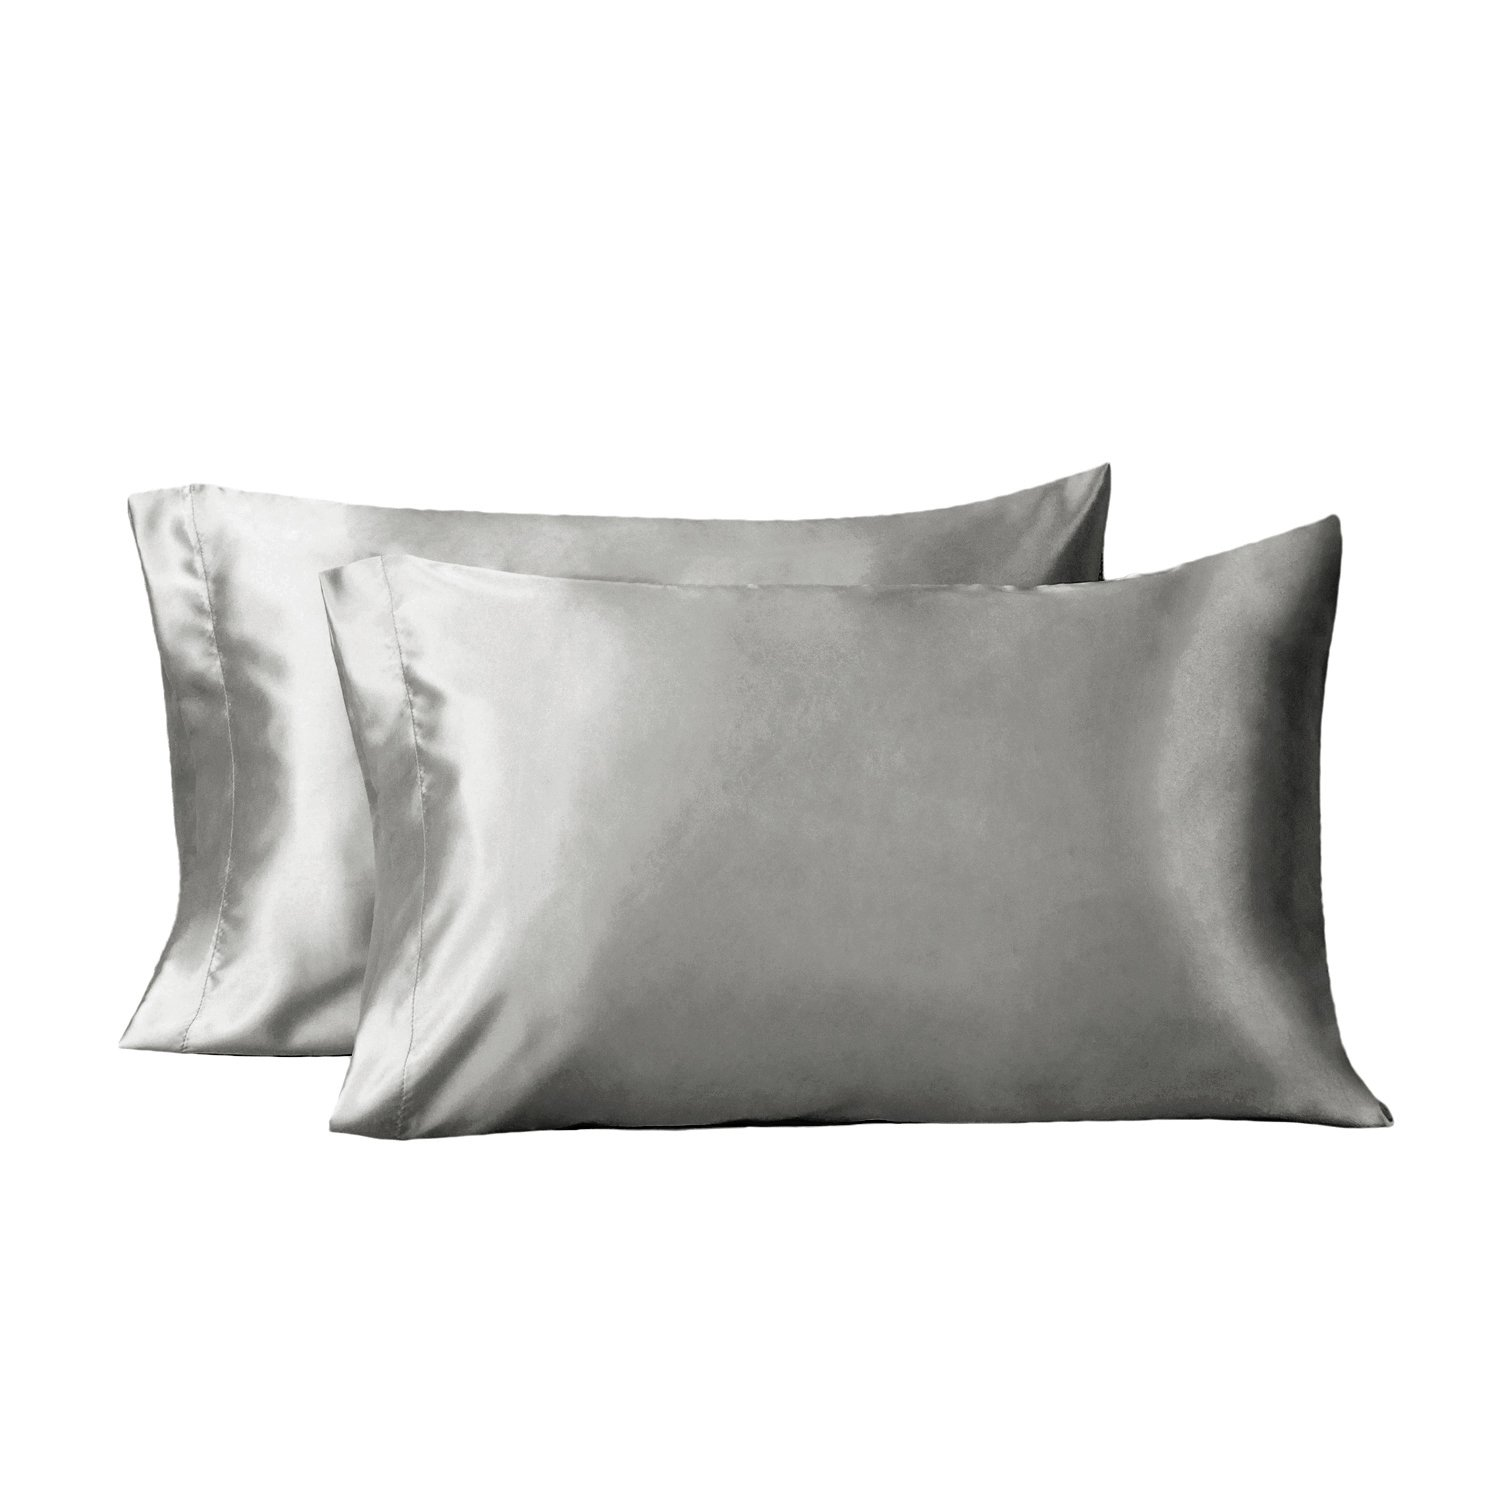 Bedsure Two-Pack Satin Pillowcases Set for Hair Cool and Easy to WASH Queen Size 20x30 Silver Grey with Envelope Closure